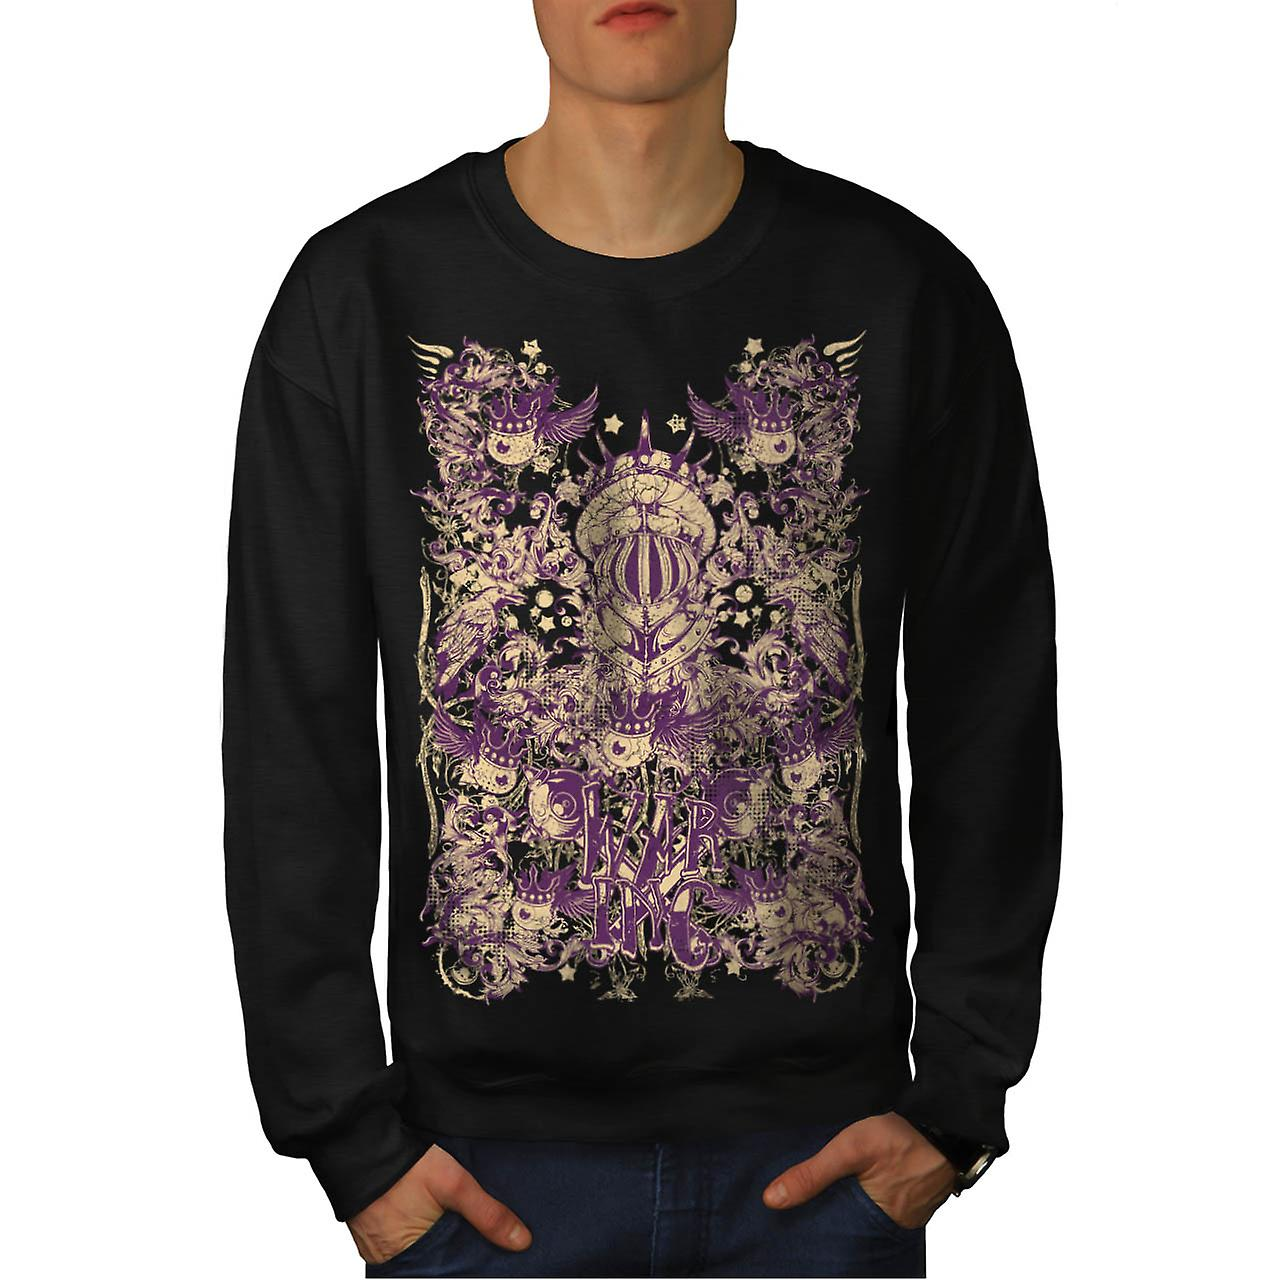 War Inc. Zombie Fashion Monster Fight Men Black Sweatshirt | Wellcoda